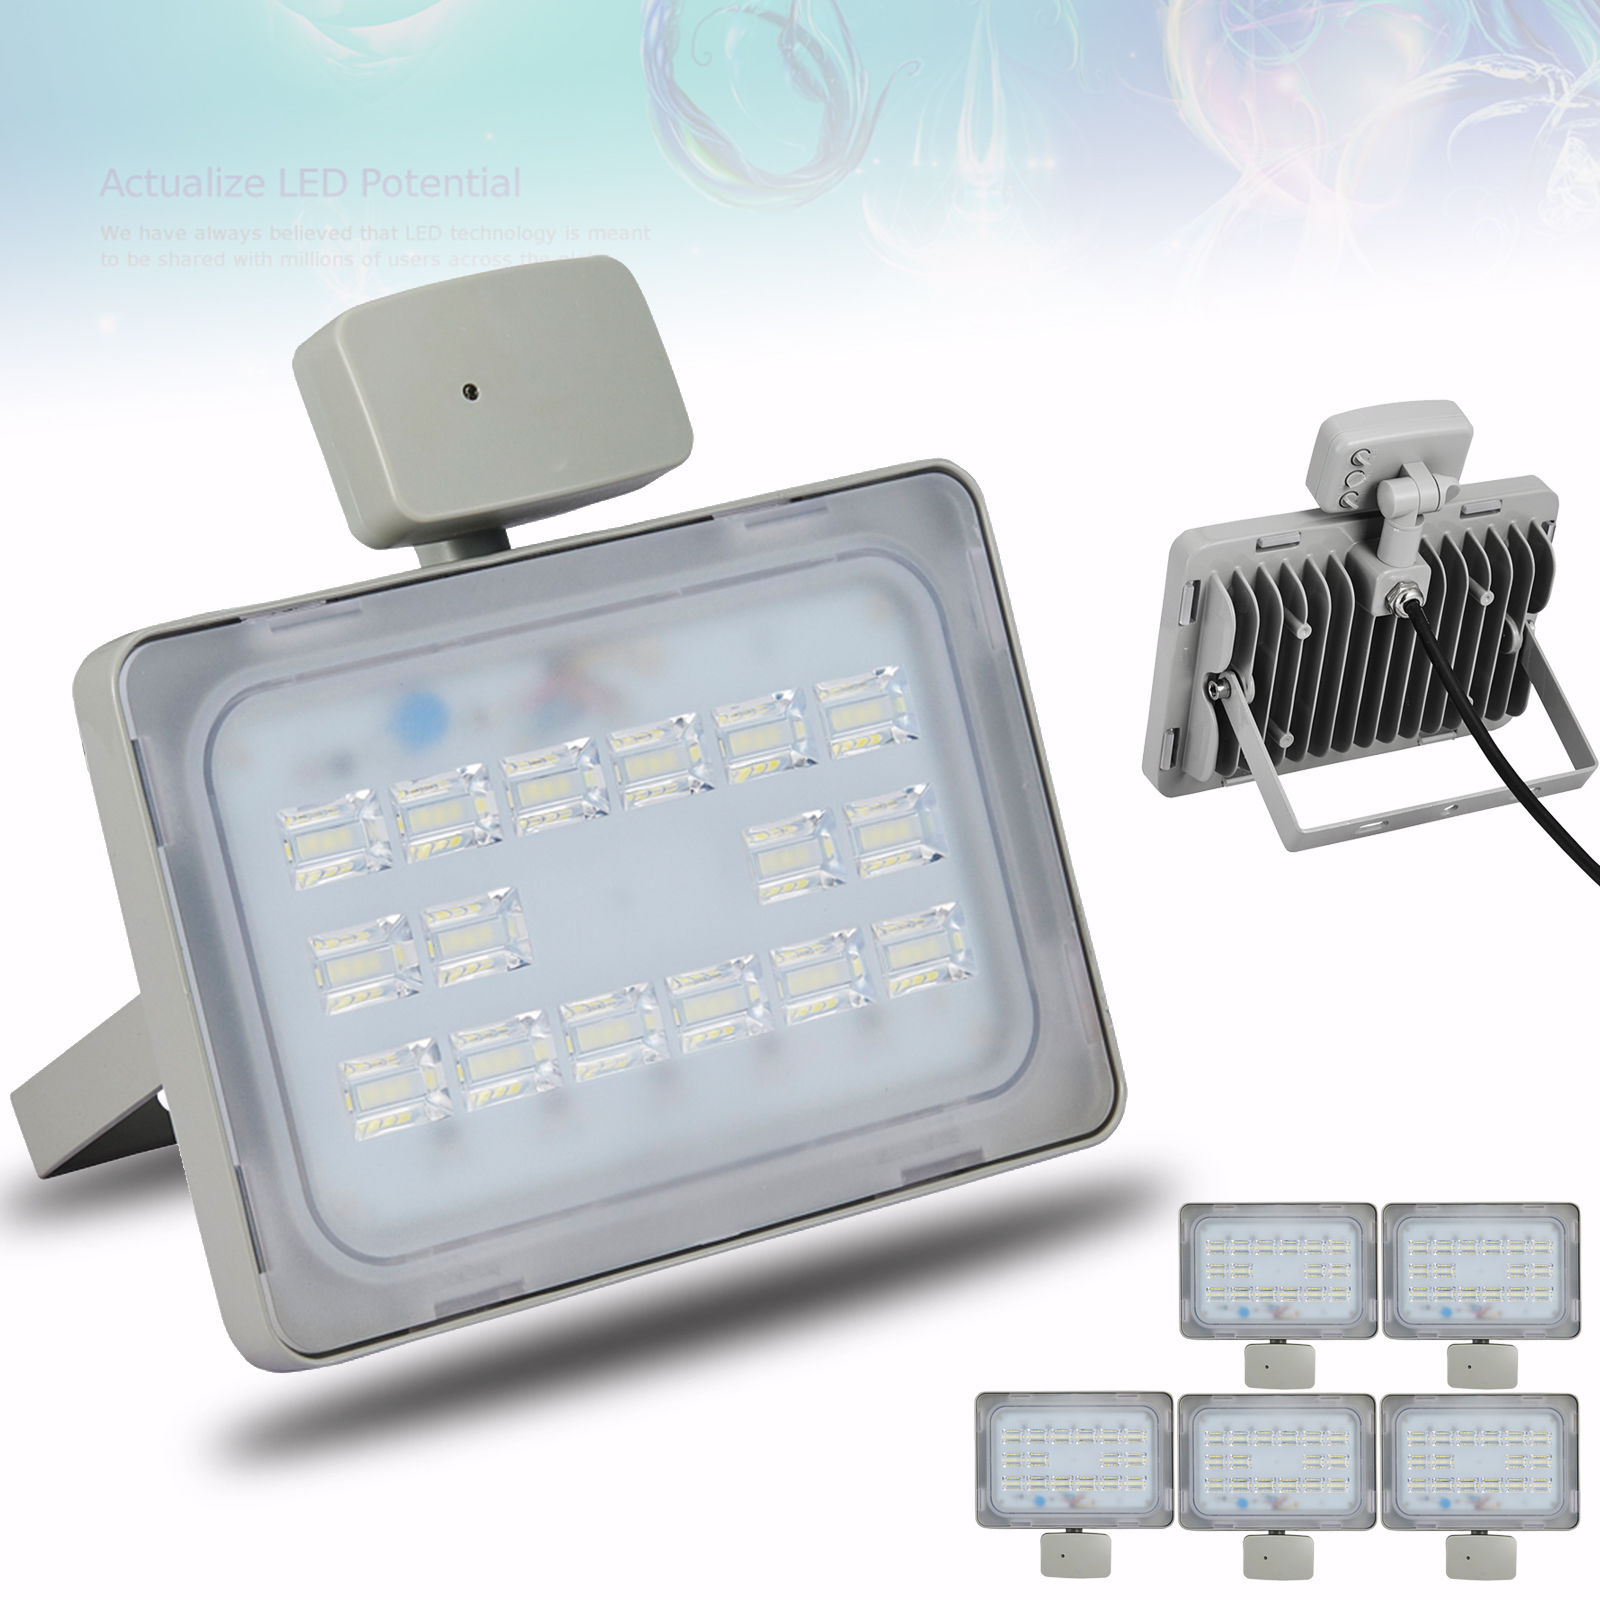 5X Viugreum 50W LED Floodlight Outdoor Garden Lamp Cool White, Microwave Sensor